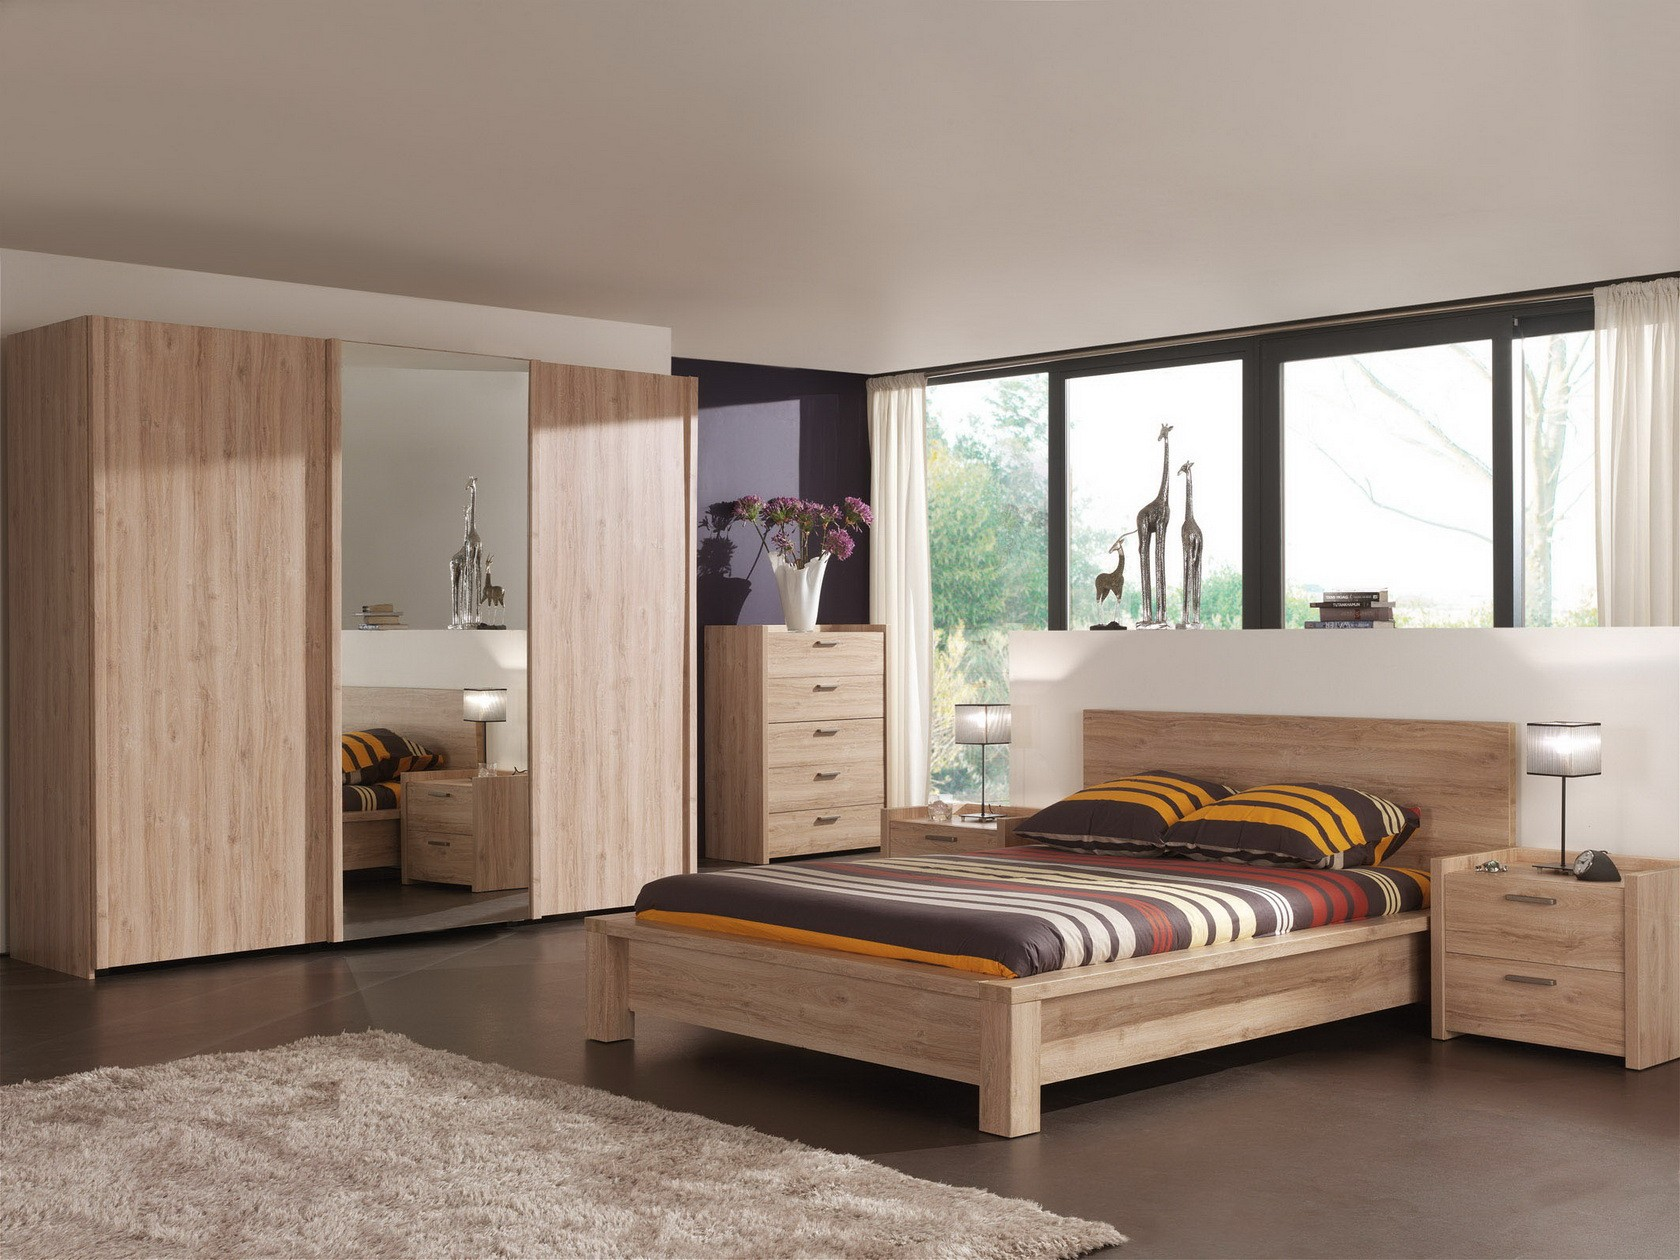 quels meubles et objets sont indispensables dans une. Black Bedroom Furniture Sets. Home Design Ideas